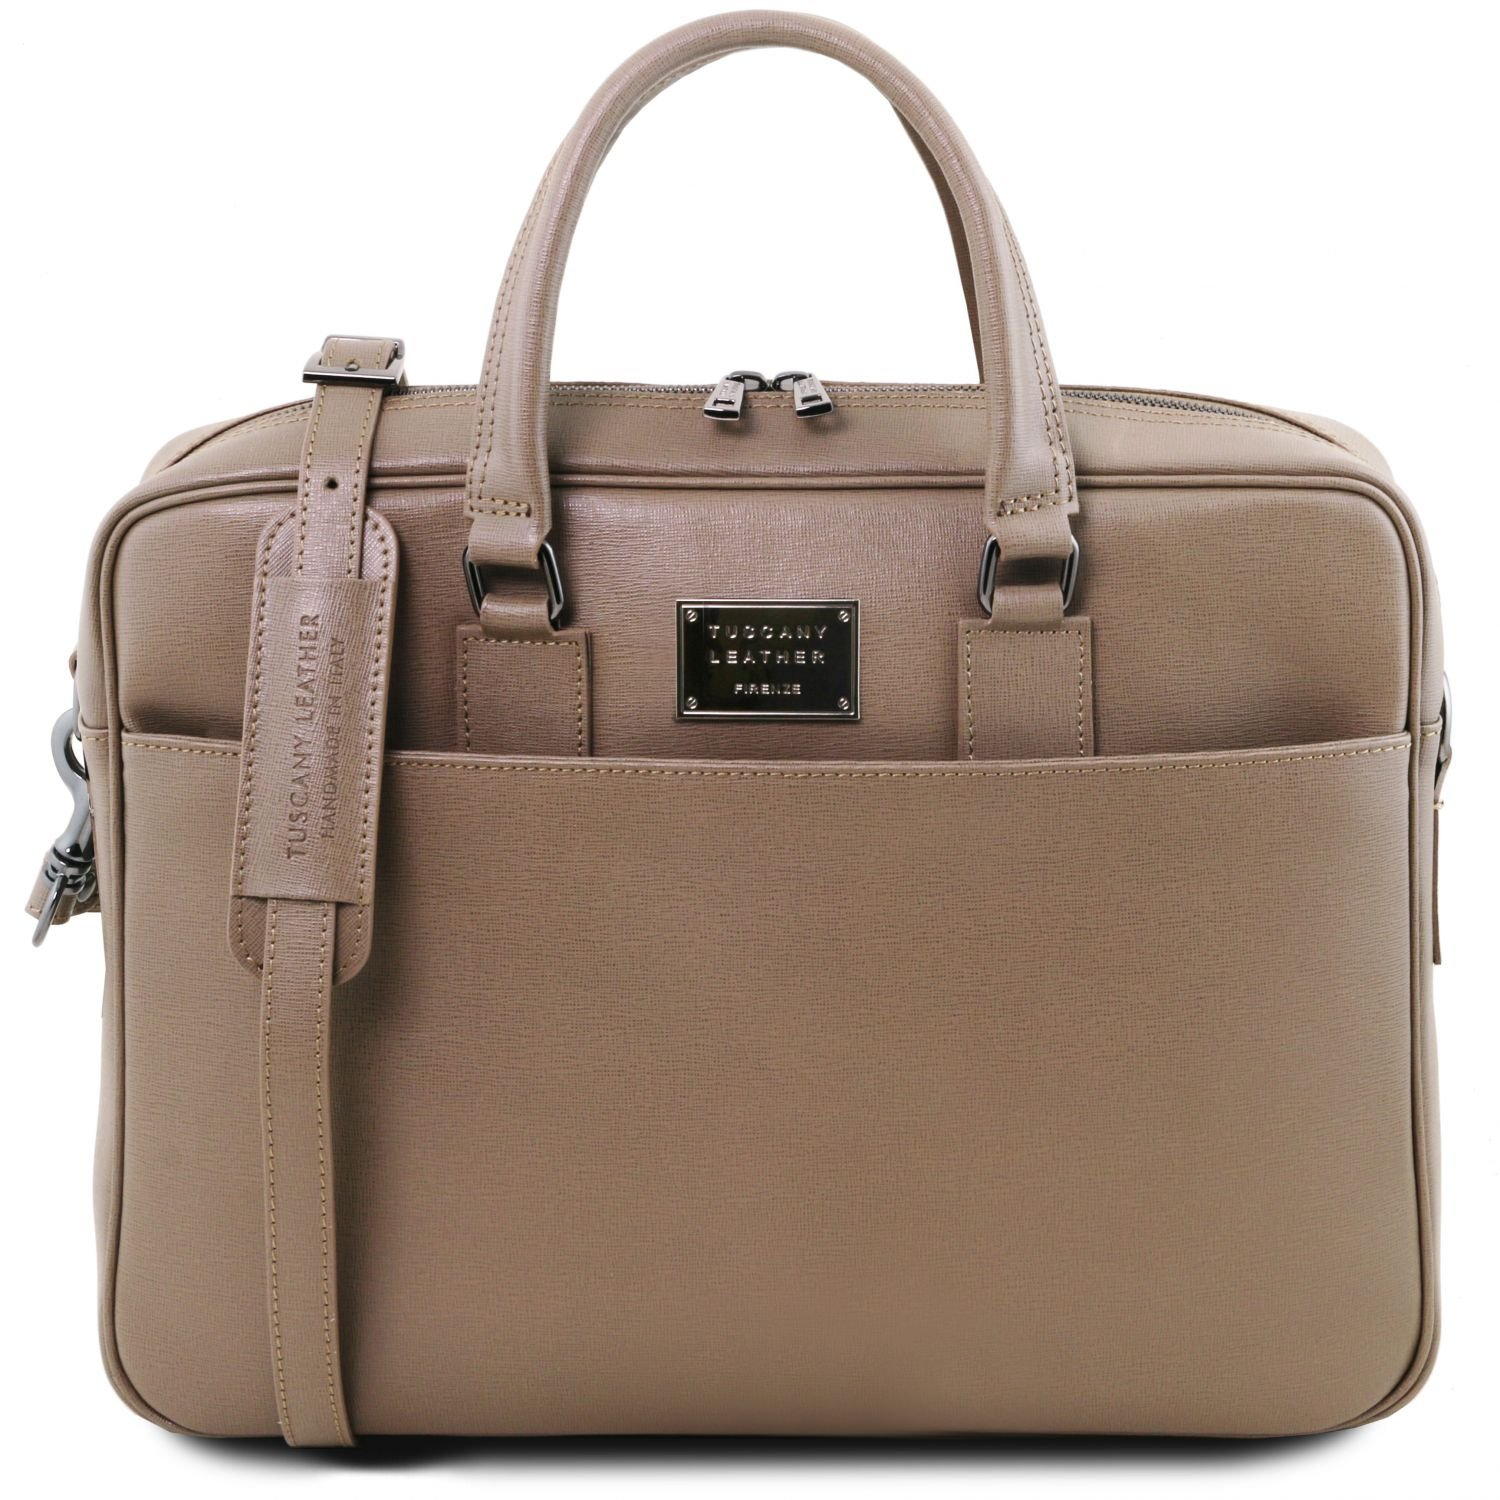 Tuscany Leather Urbino Saffiano leather laptop briefcase with front pocket Dark Taupe